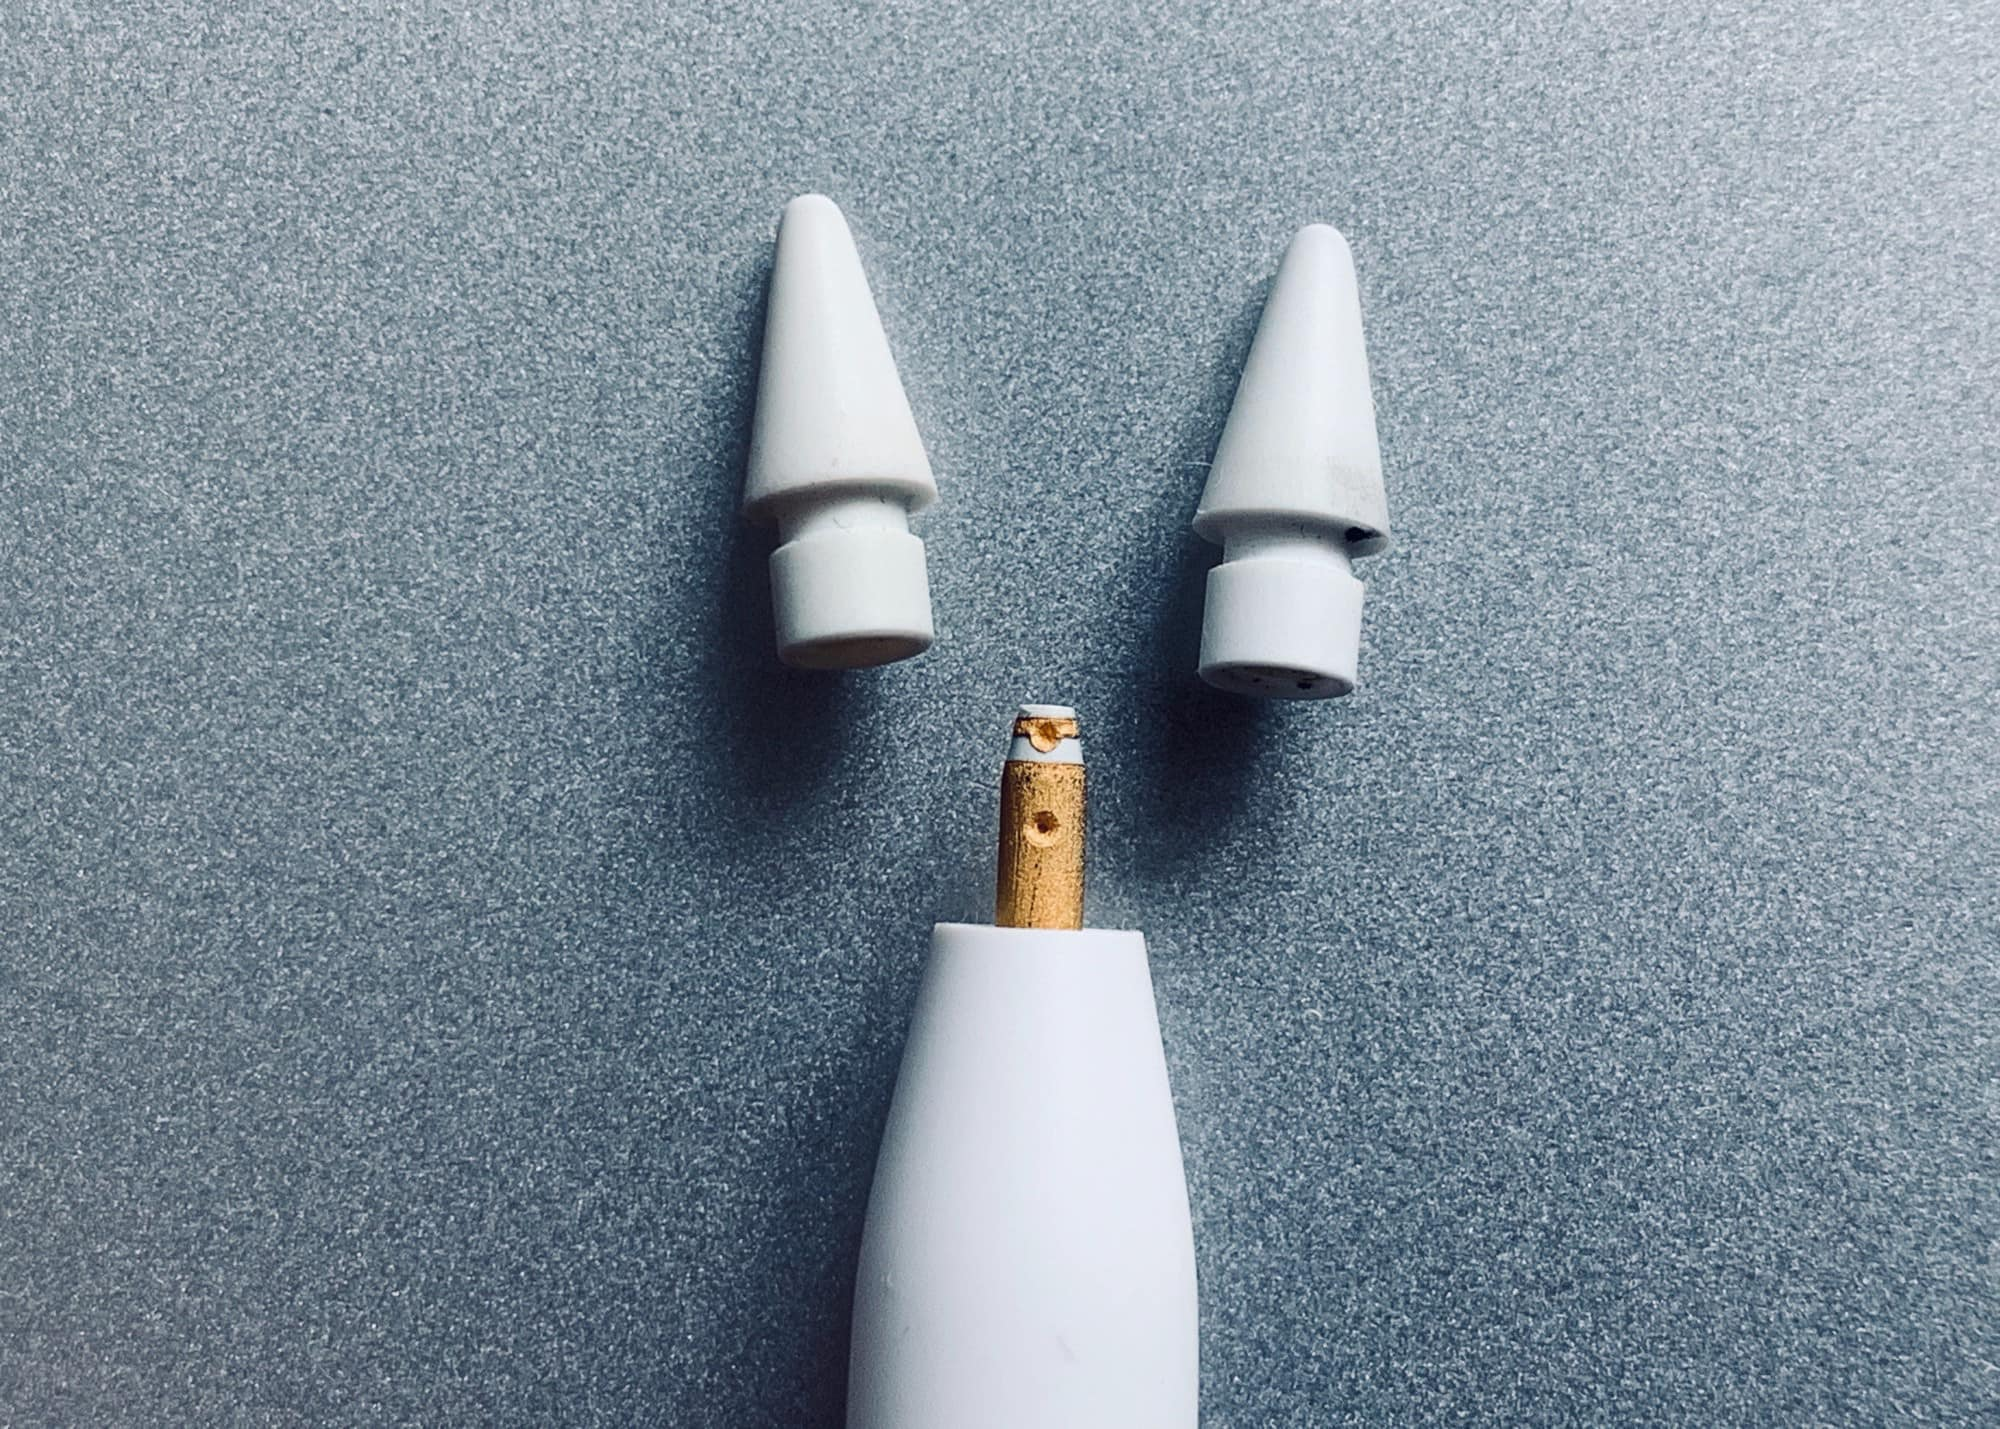 Apple Pencil tips are as easy to swap as they are to lose.